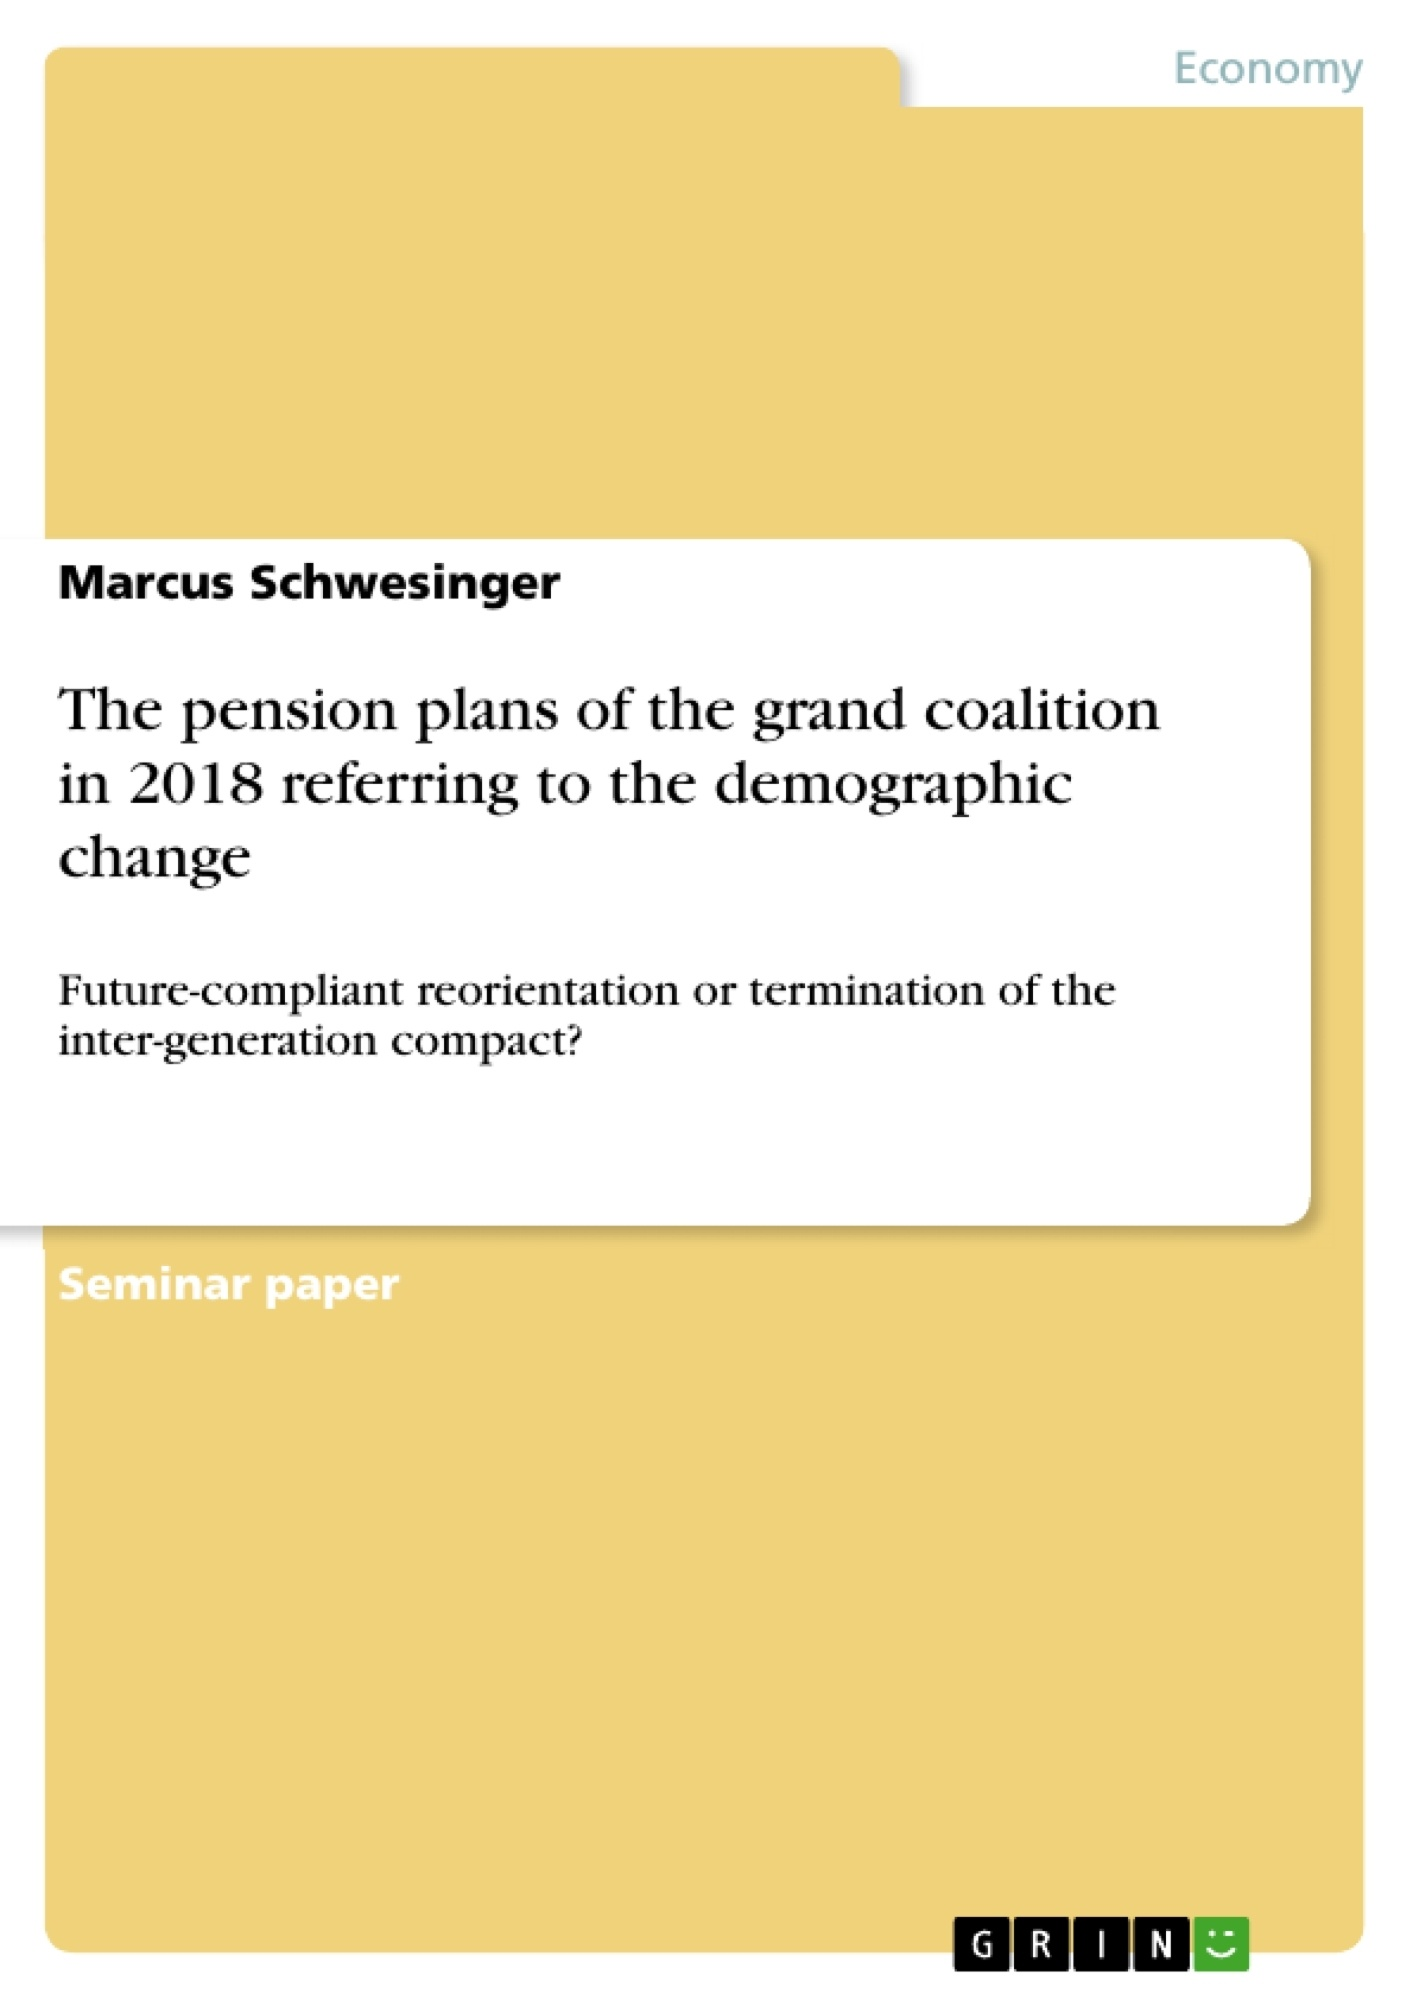 Title: The pension plans of the grand coalition in 2018 referring to the demographic change